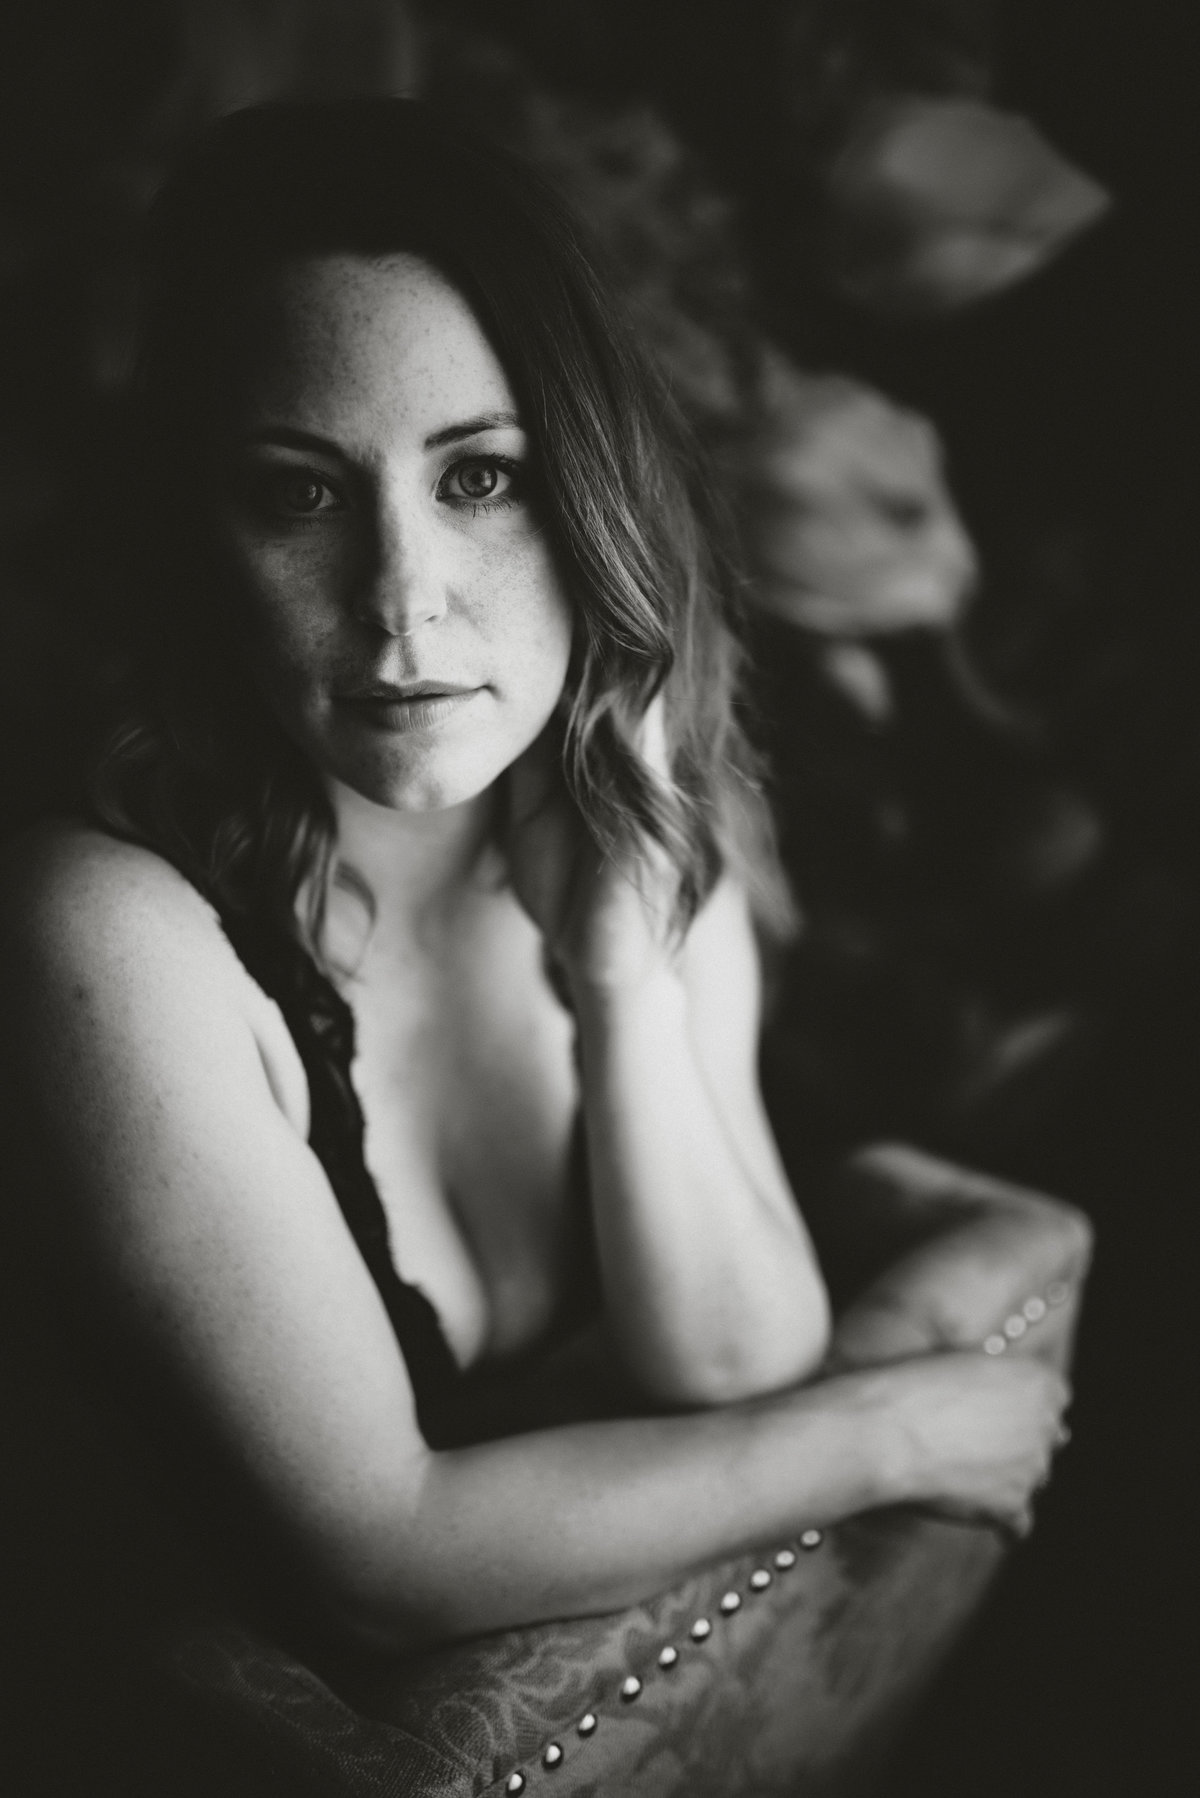 erika-gayle-photography-regina-boudoir-intimate-portrait-photographer-27